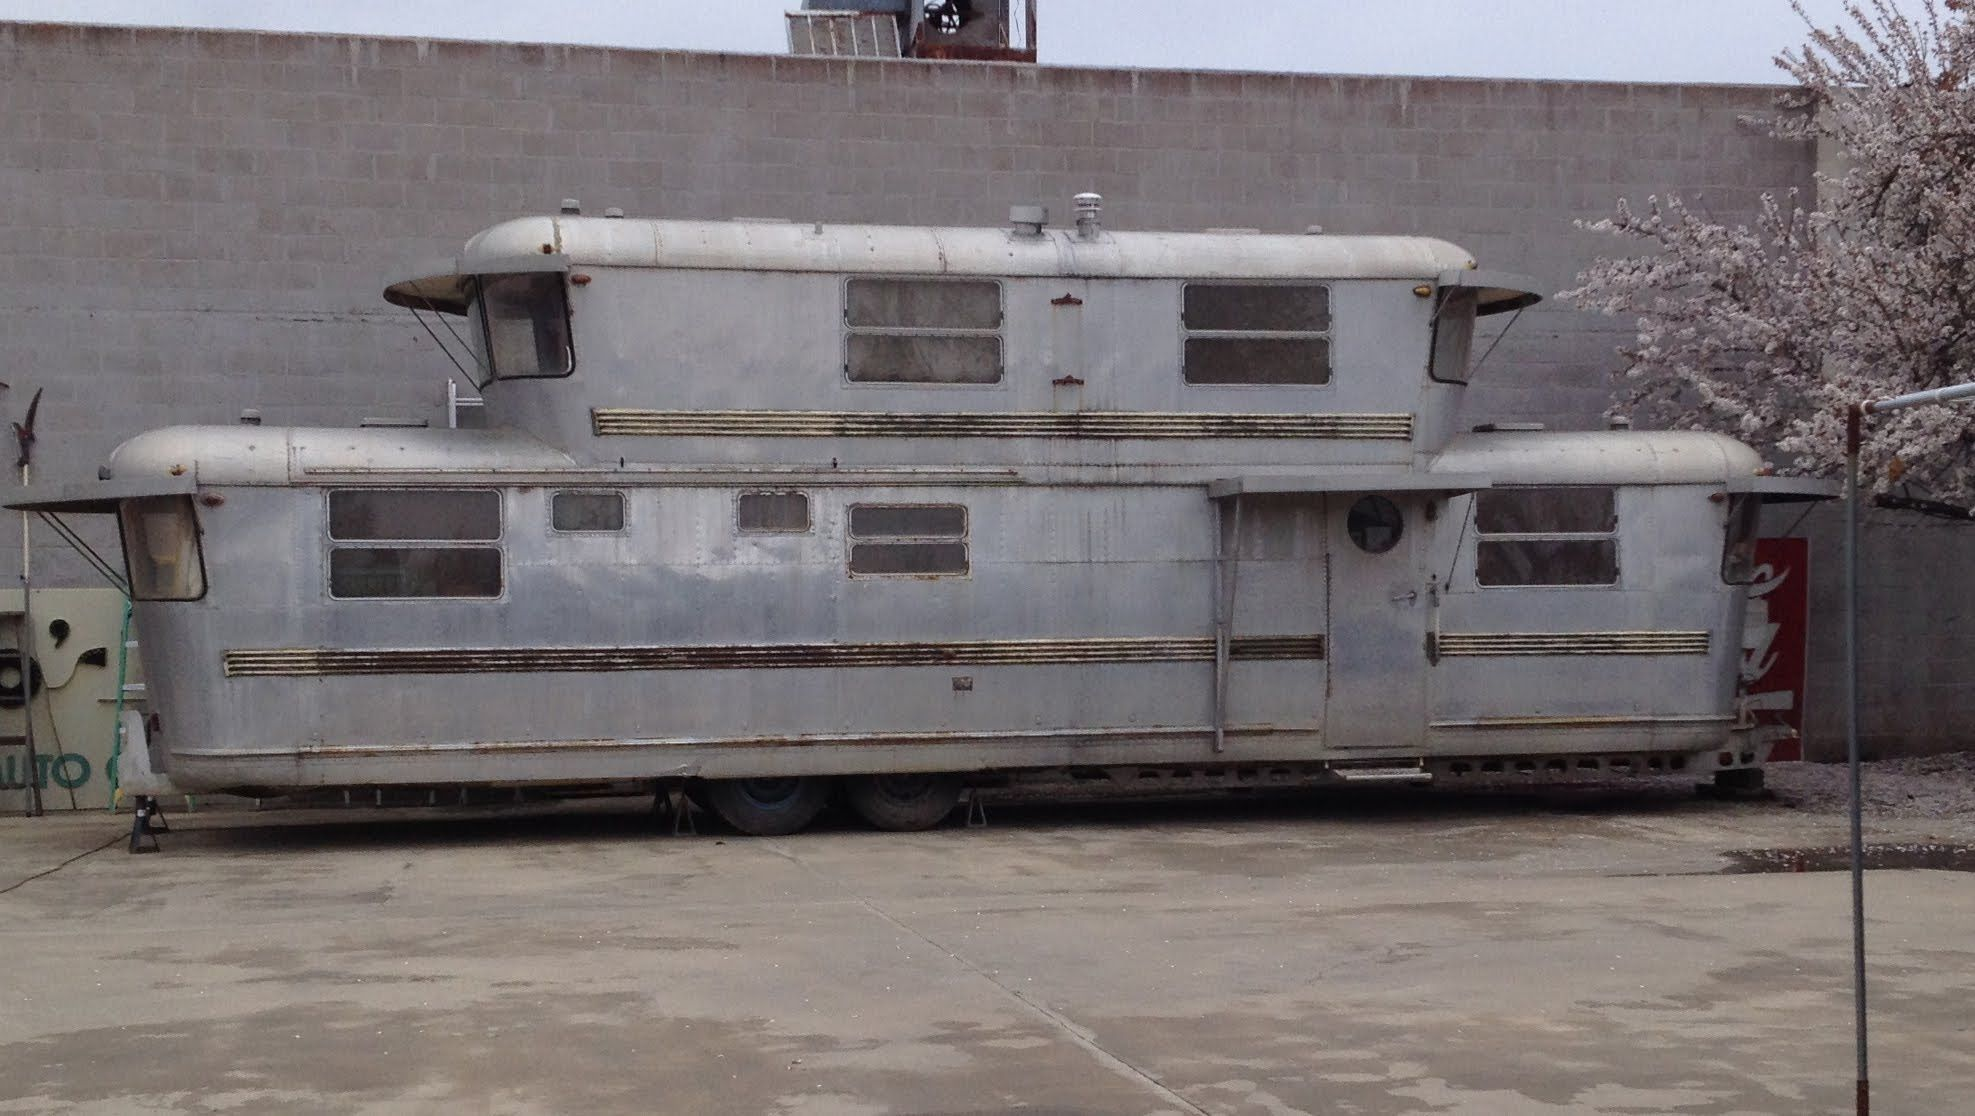 An amazing 2story trailer and the girl who called it home